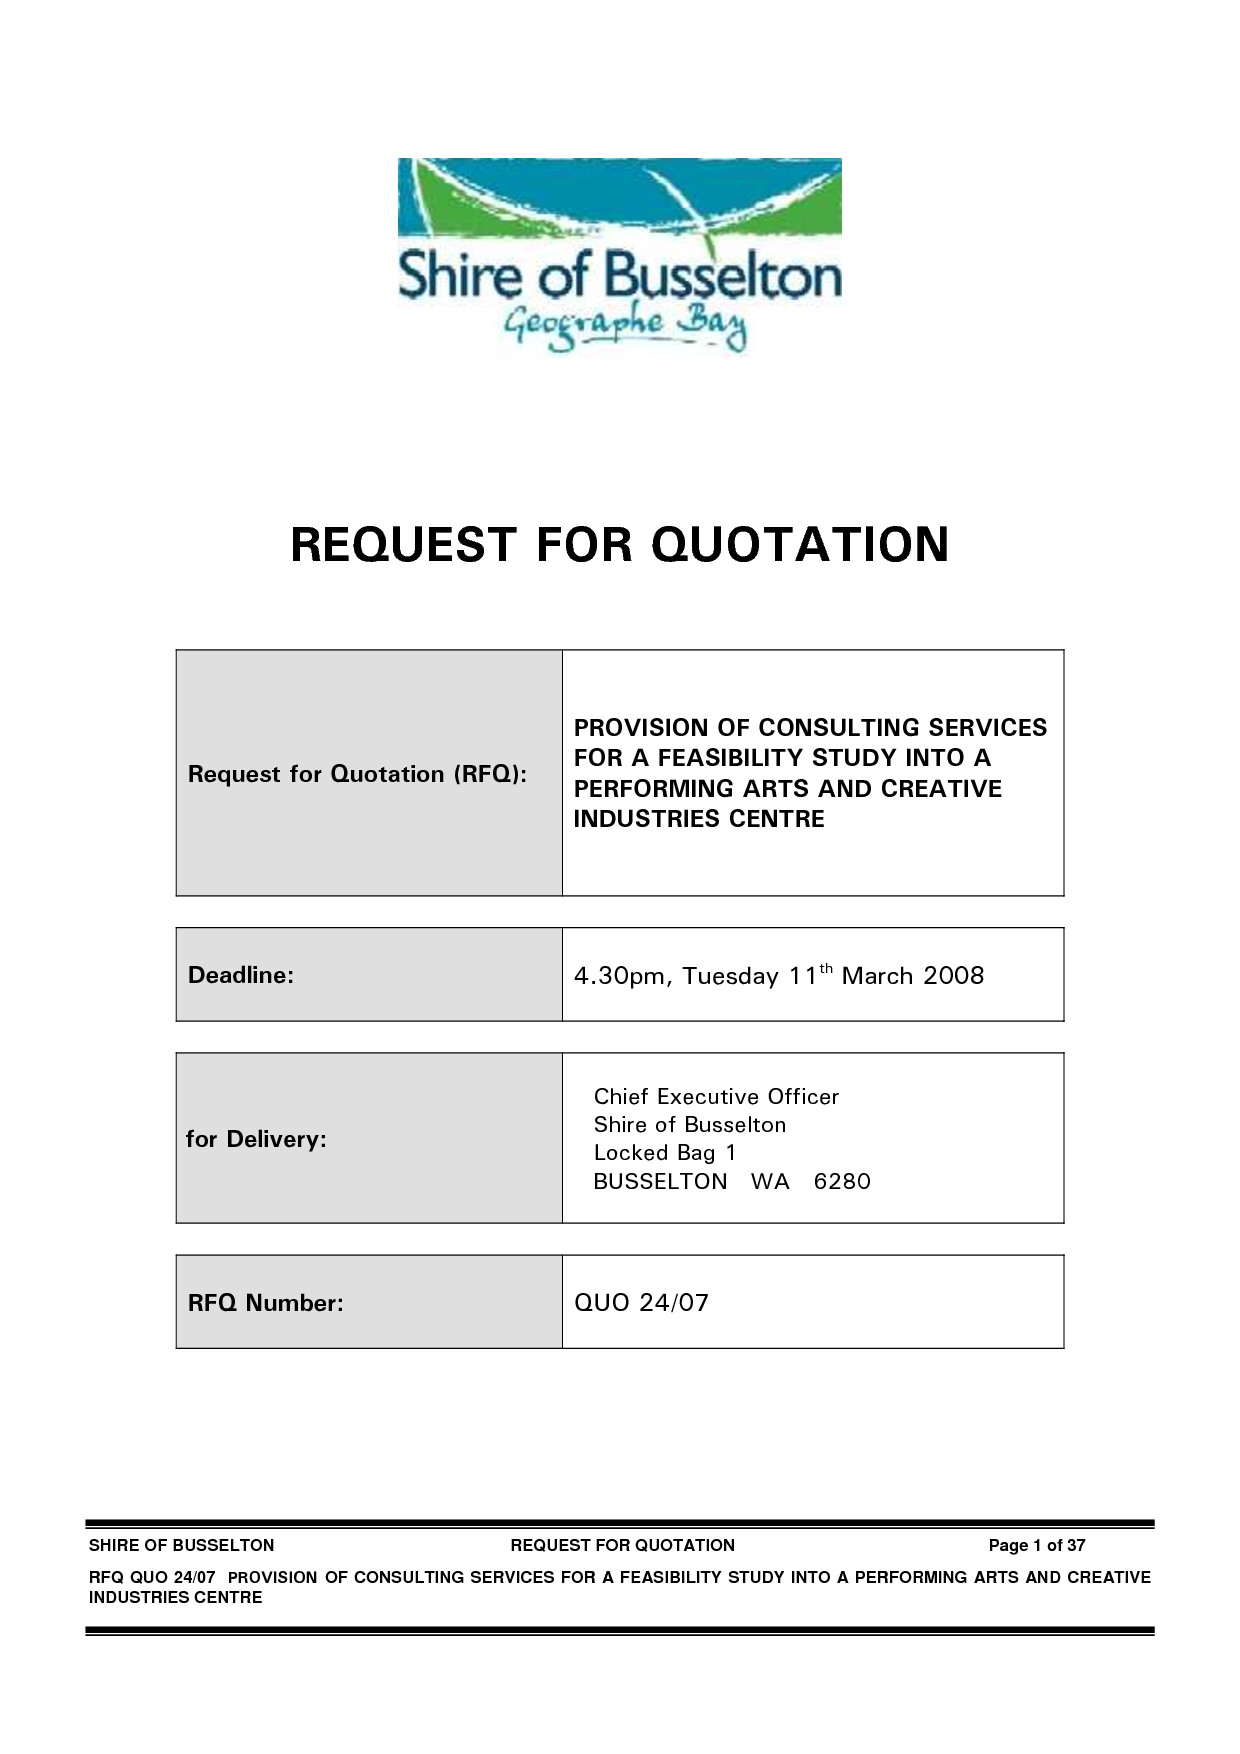 official quotation format - 28 images - template invoiceuote free ...